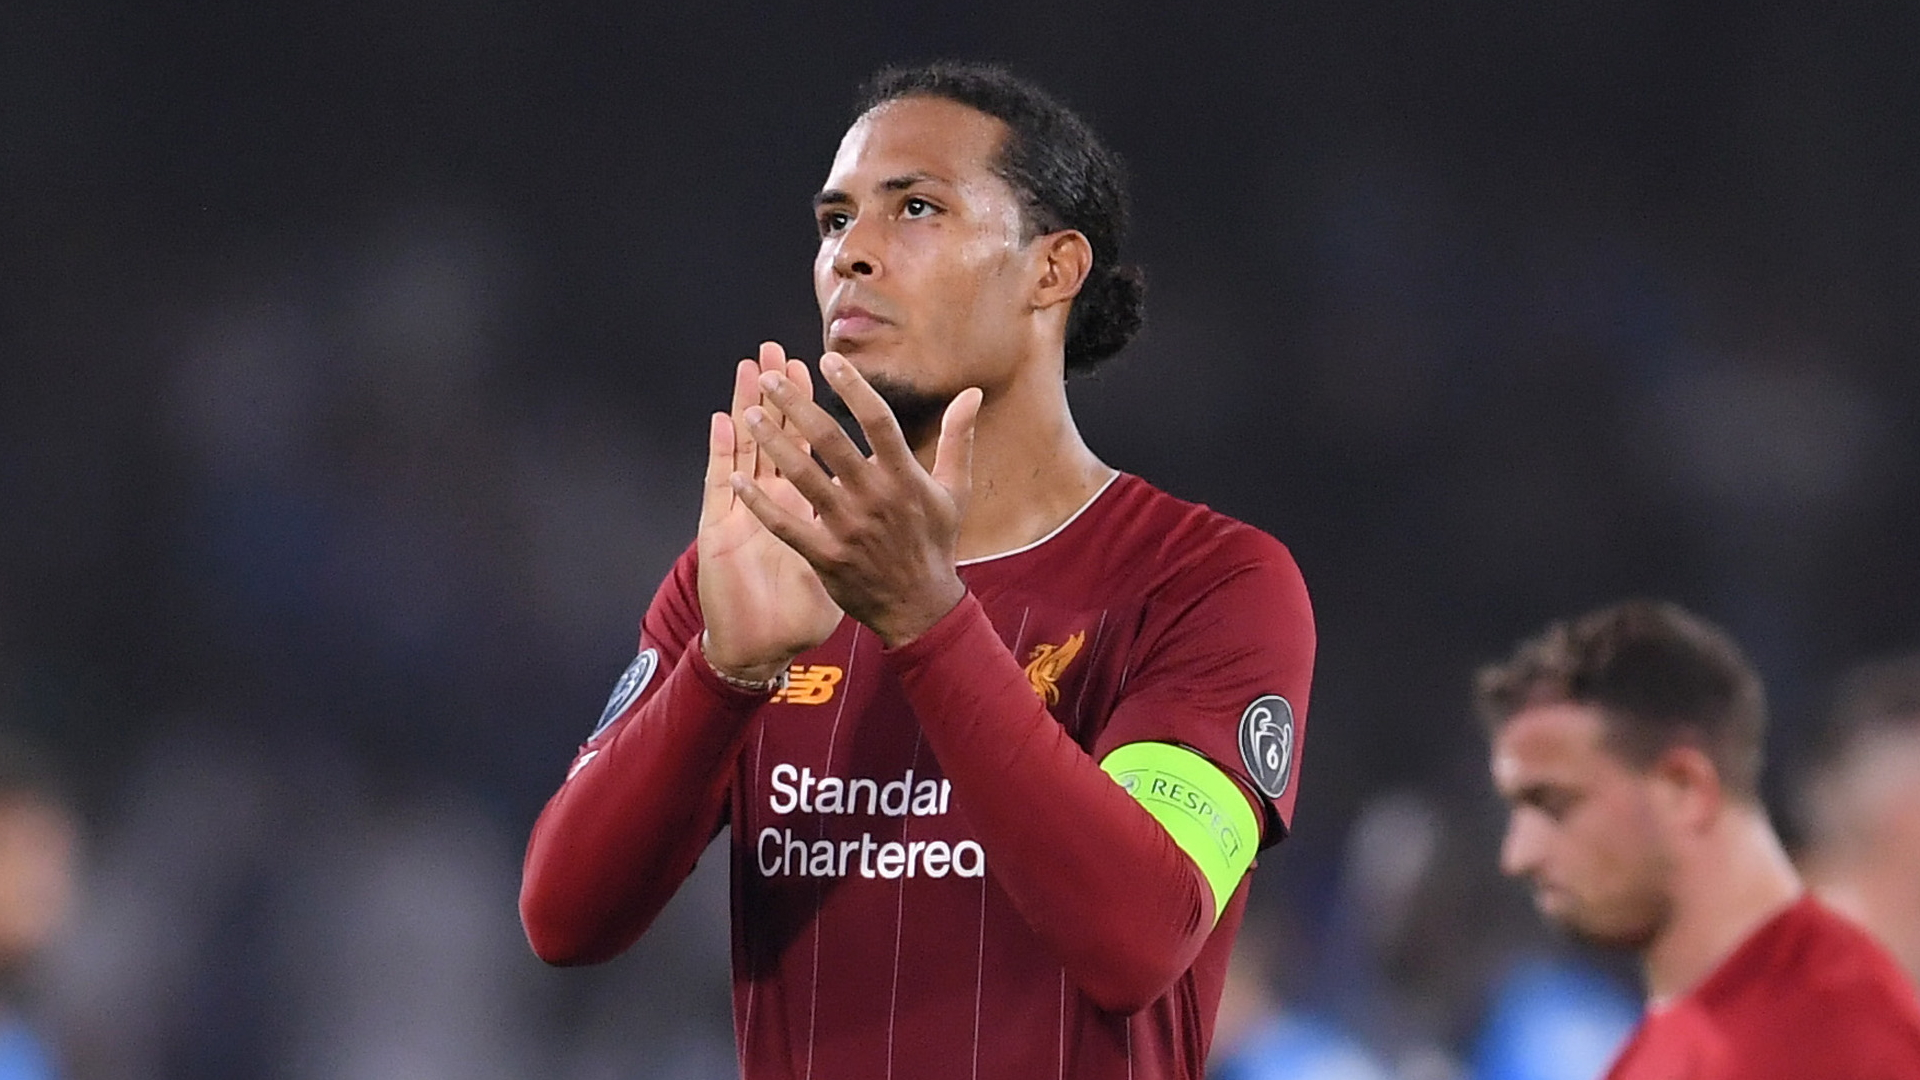 Virgil van Dijk est-il le grand favori pour le Ballon d'Or 2019 ?